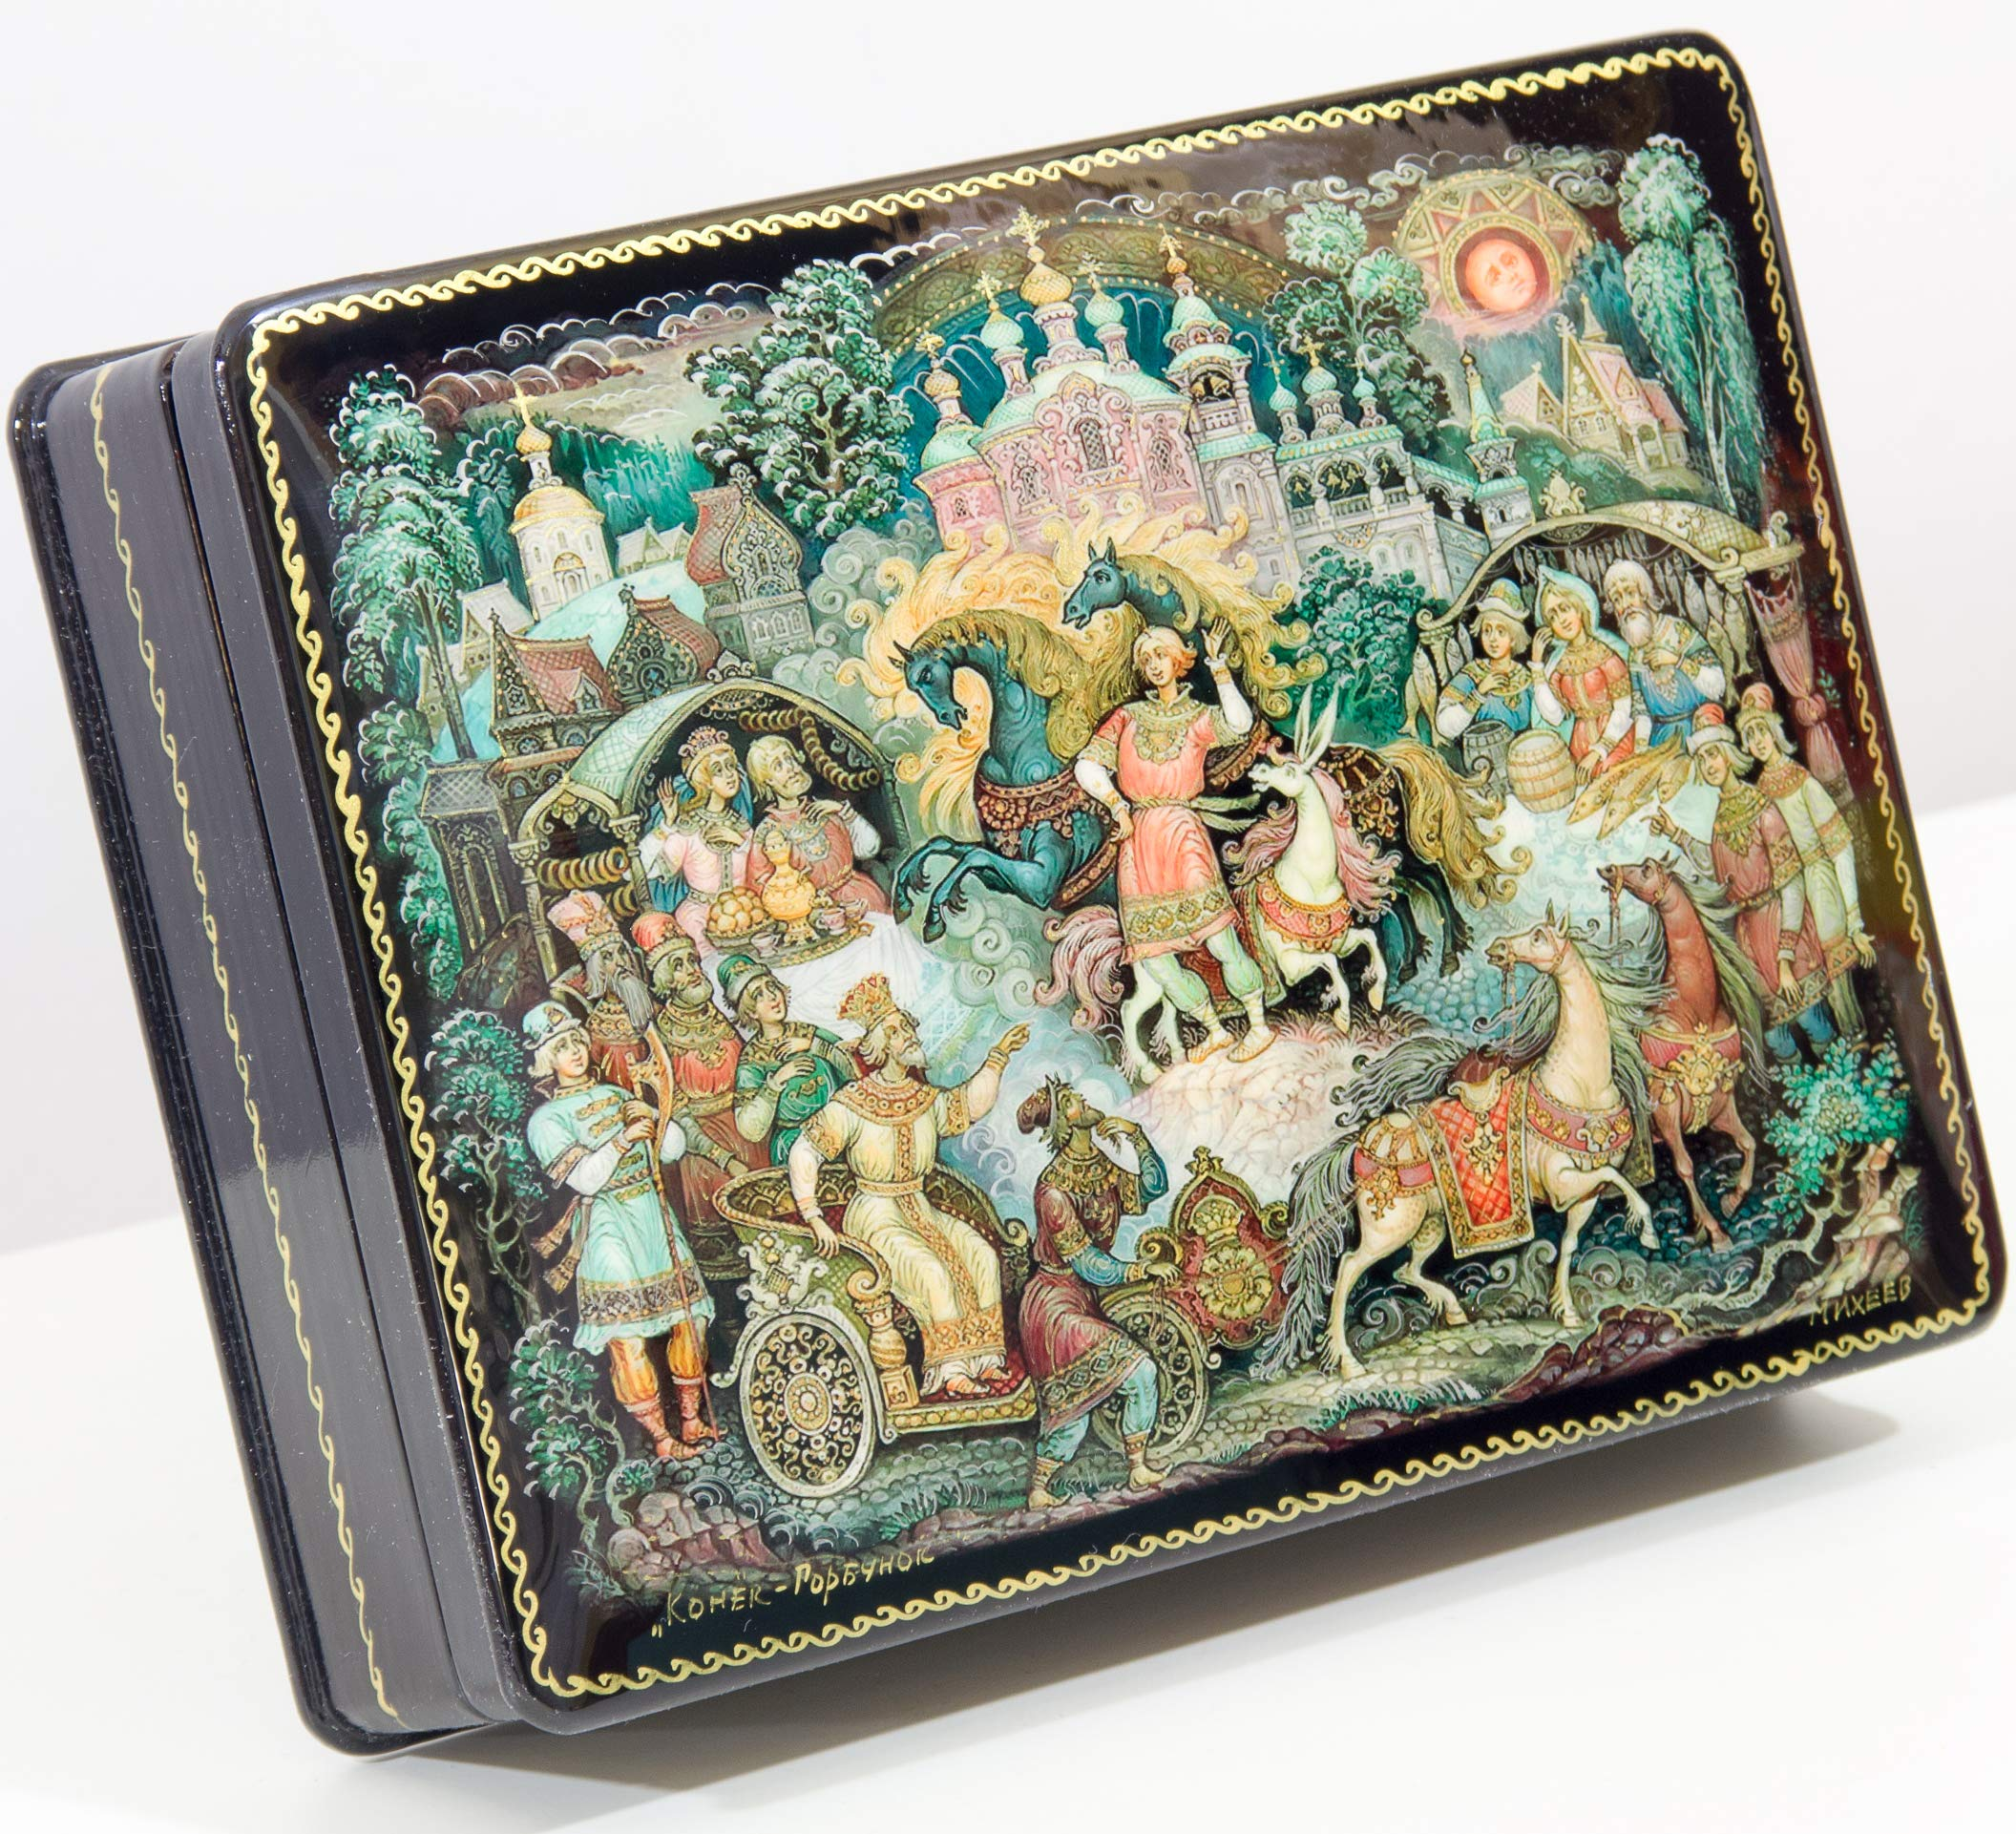 craftsfromrussia Russian Lacquer Miniature - Jewelry Trinket Box - Series #2''_''(Fairy Tale) - Big Size - Hand Painted in Russia (Series B - 19)